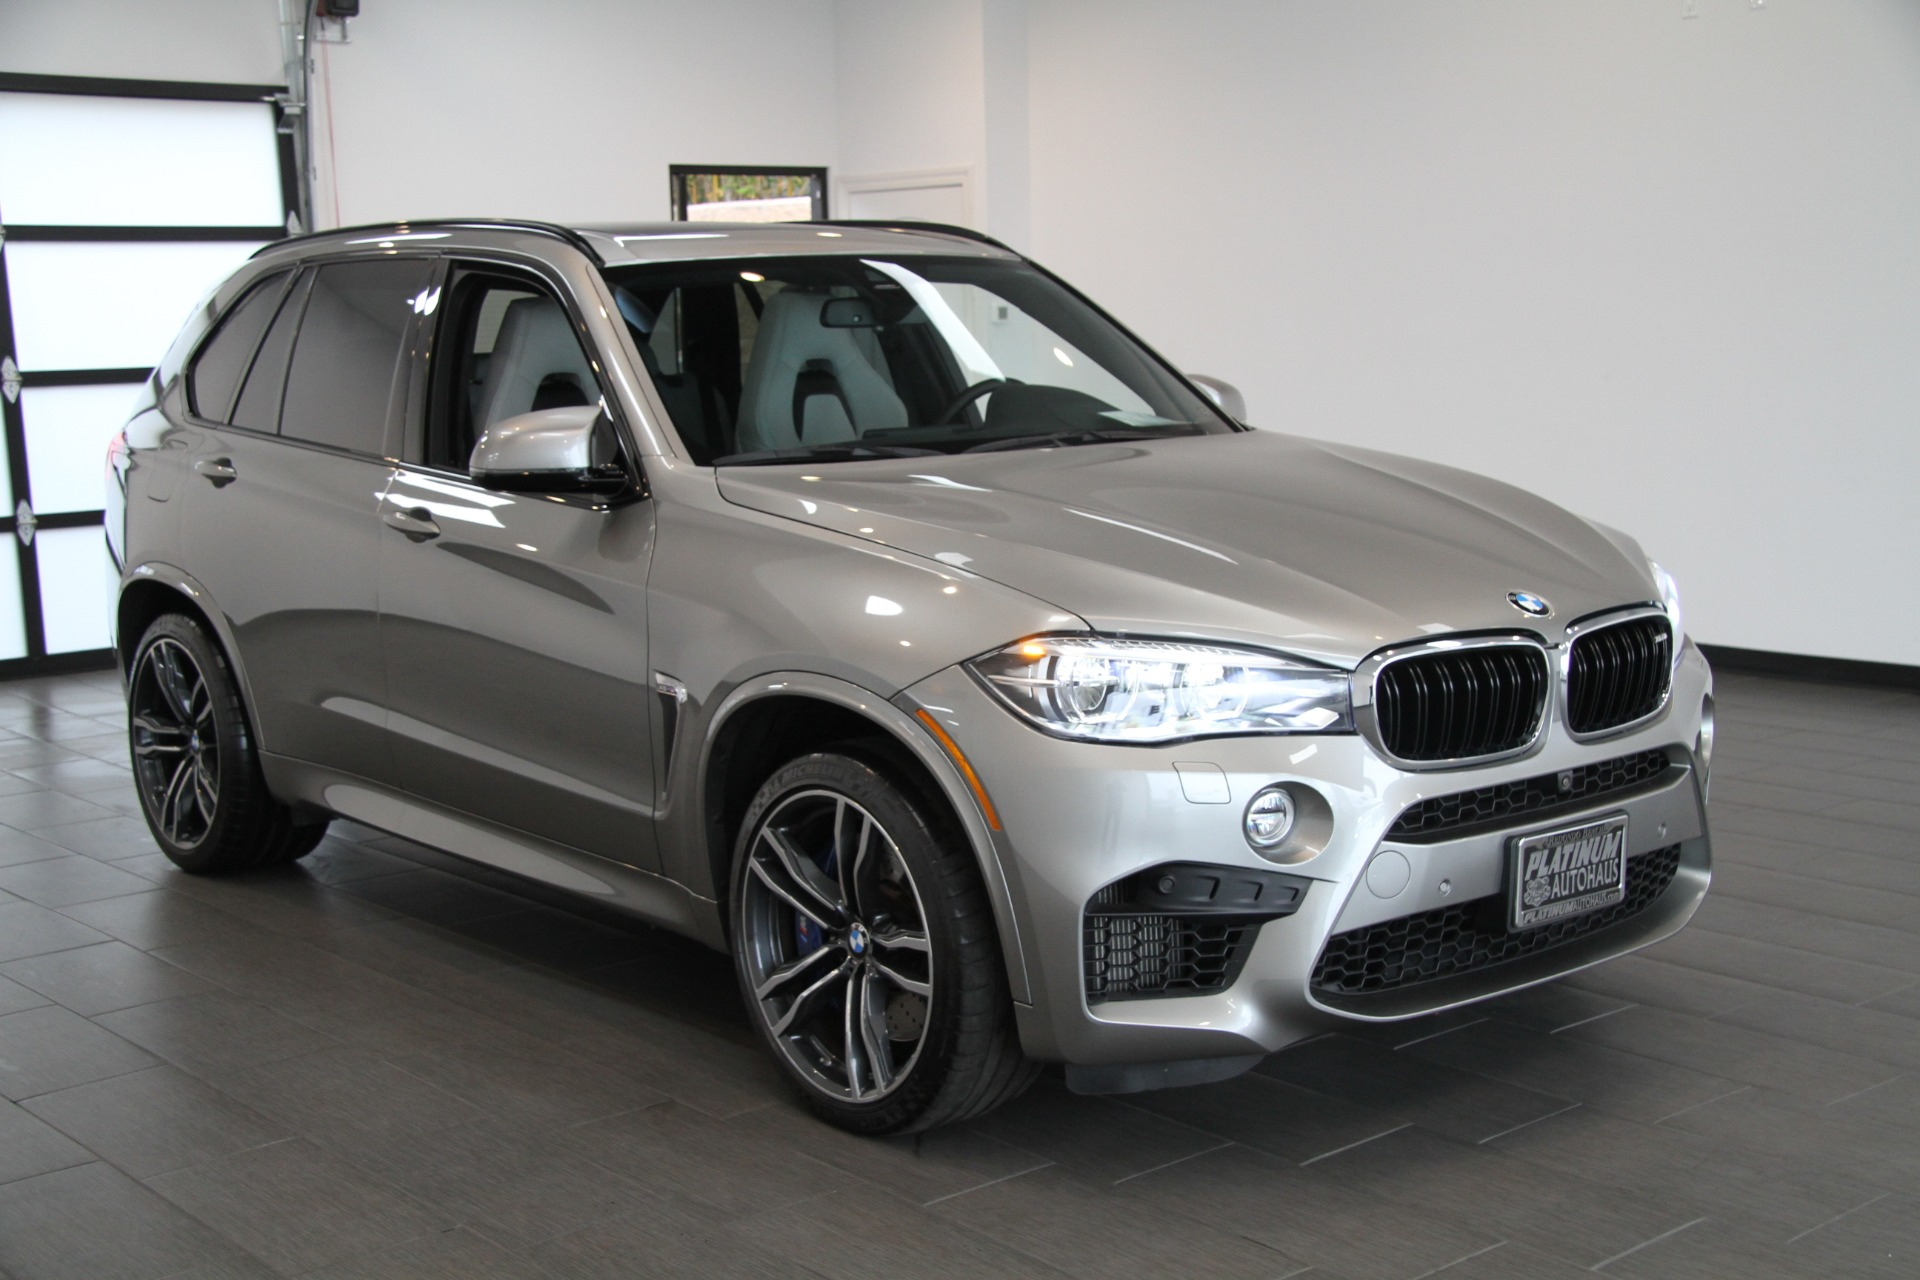 2016 Bmw X5 M Stock R79355 For Sale Near Redondo Beach